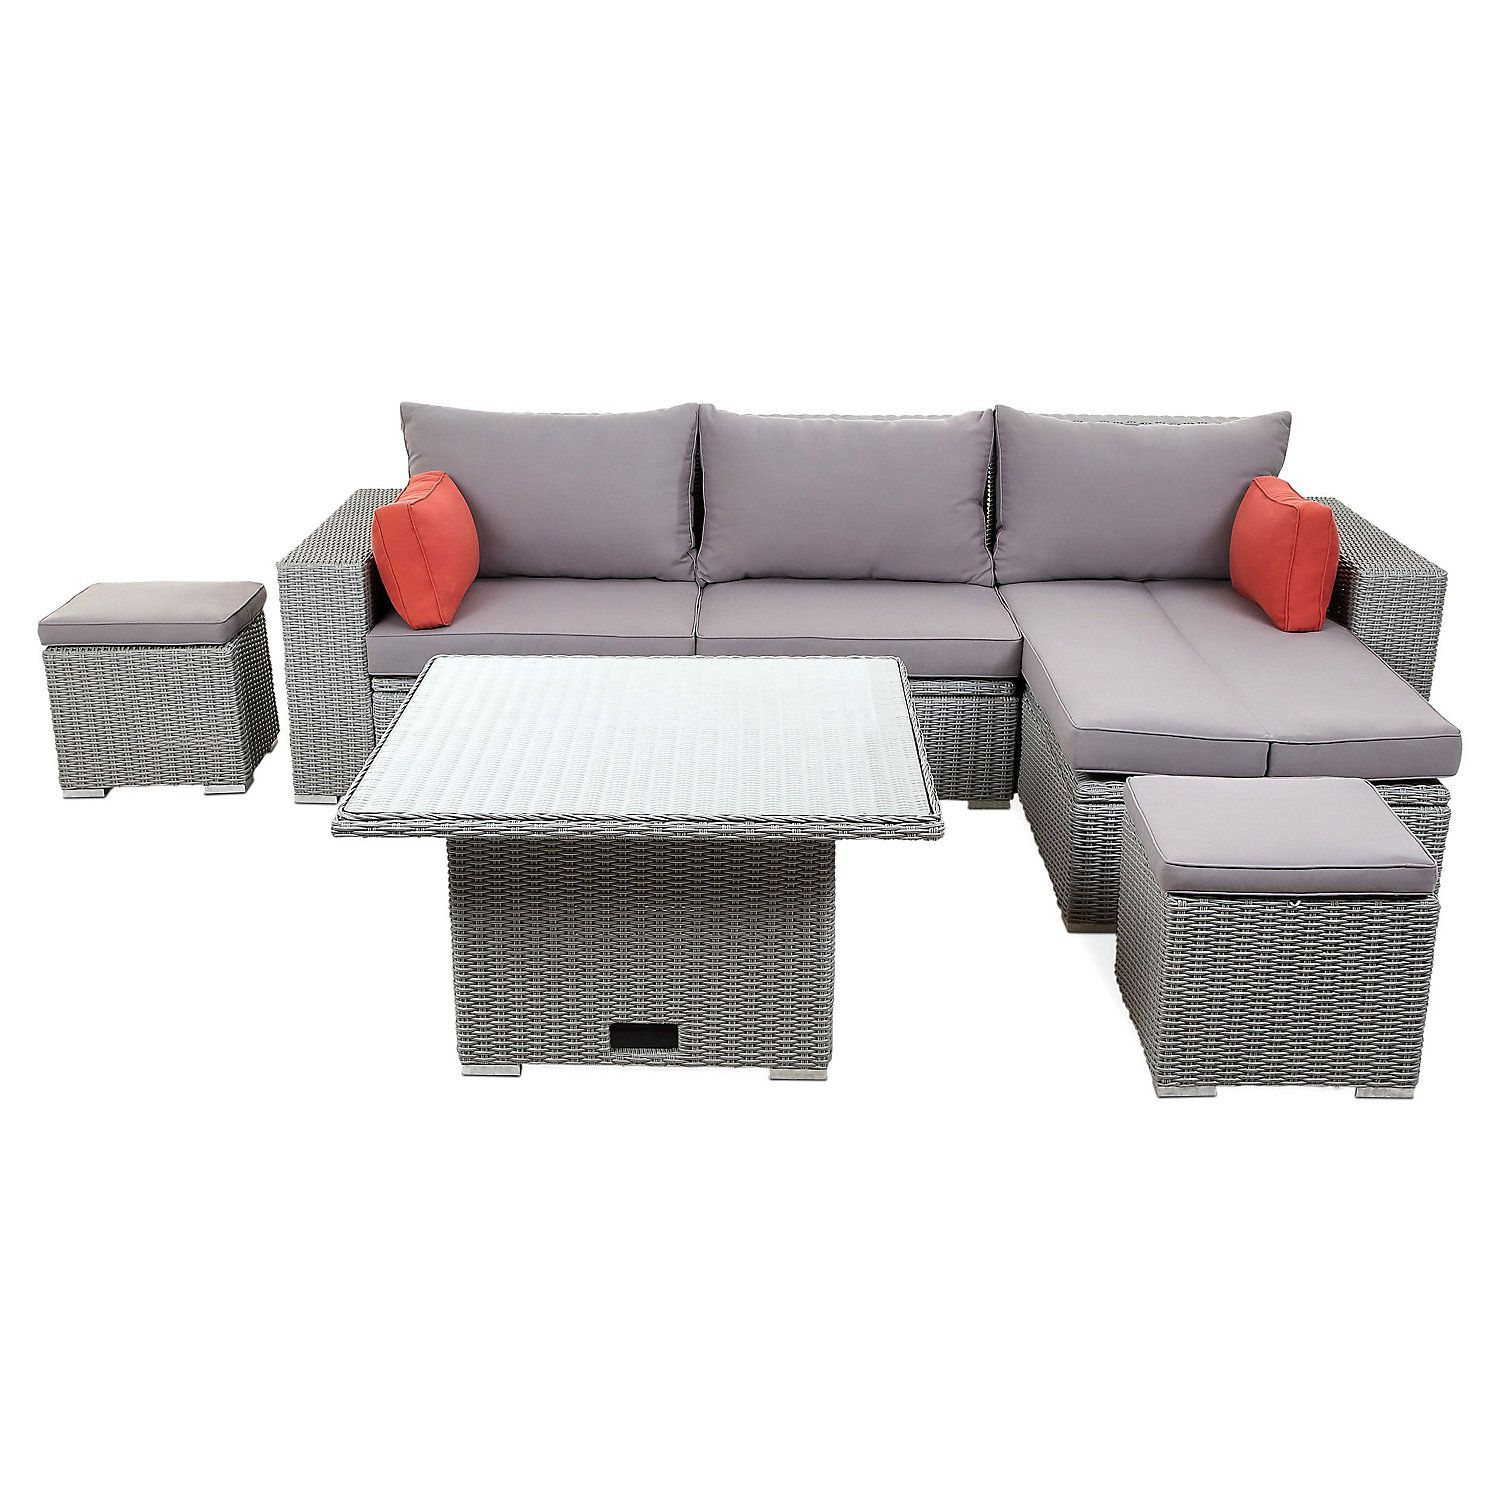 Weather resistant Grey VonHaus Rattan Sofa and Table Set Rope Style Rattan Wicker Garden Set with Glass-top table